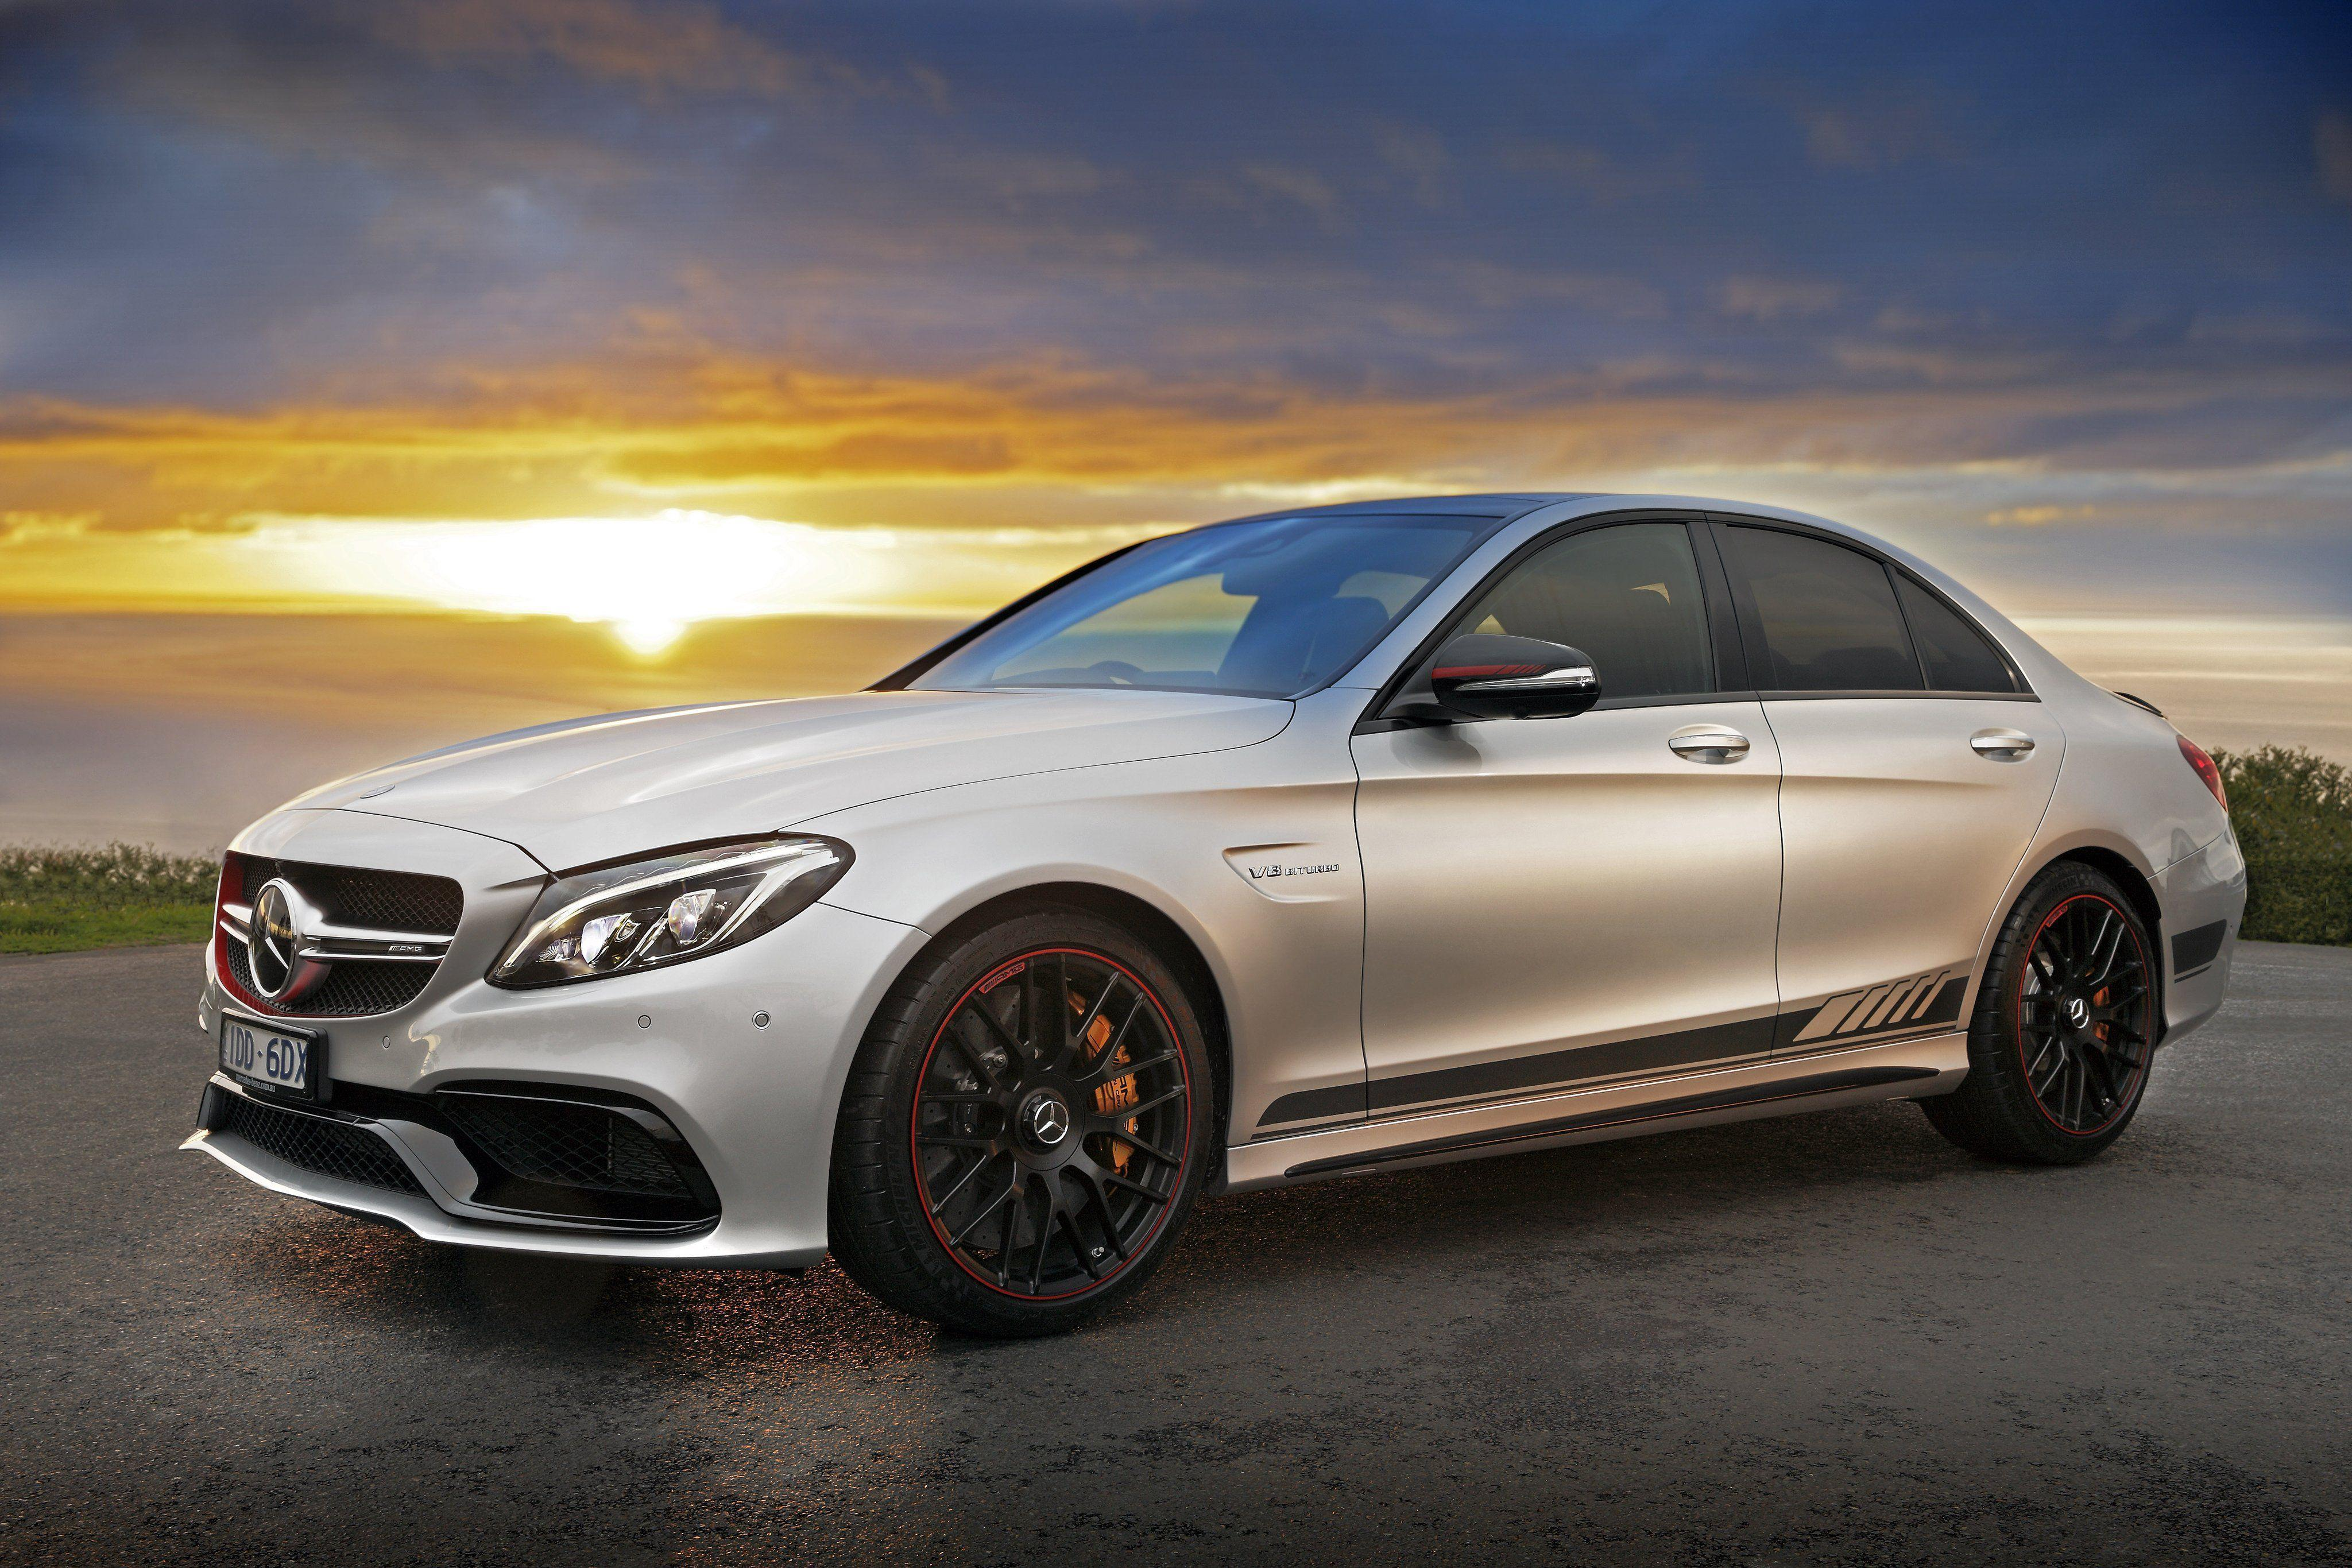 Mercedes-AMG C63 S Coupe Wallpapers - Wallpaper Cave